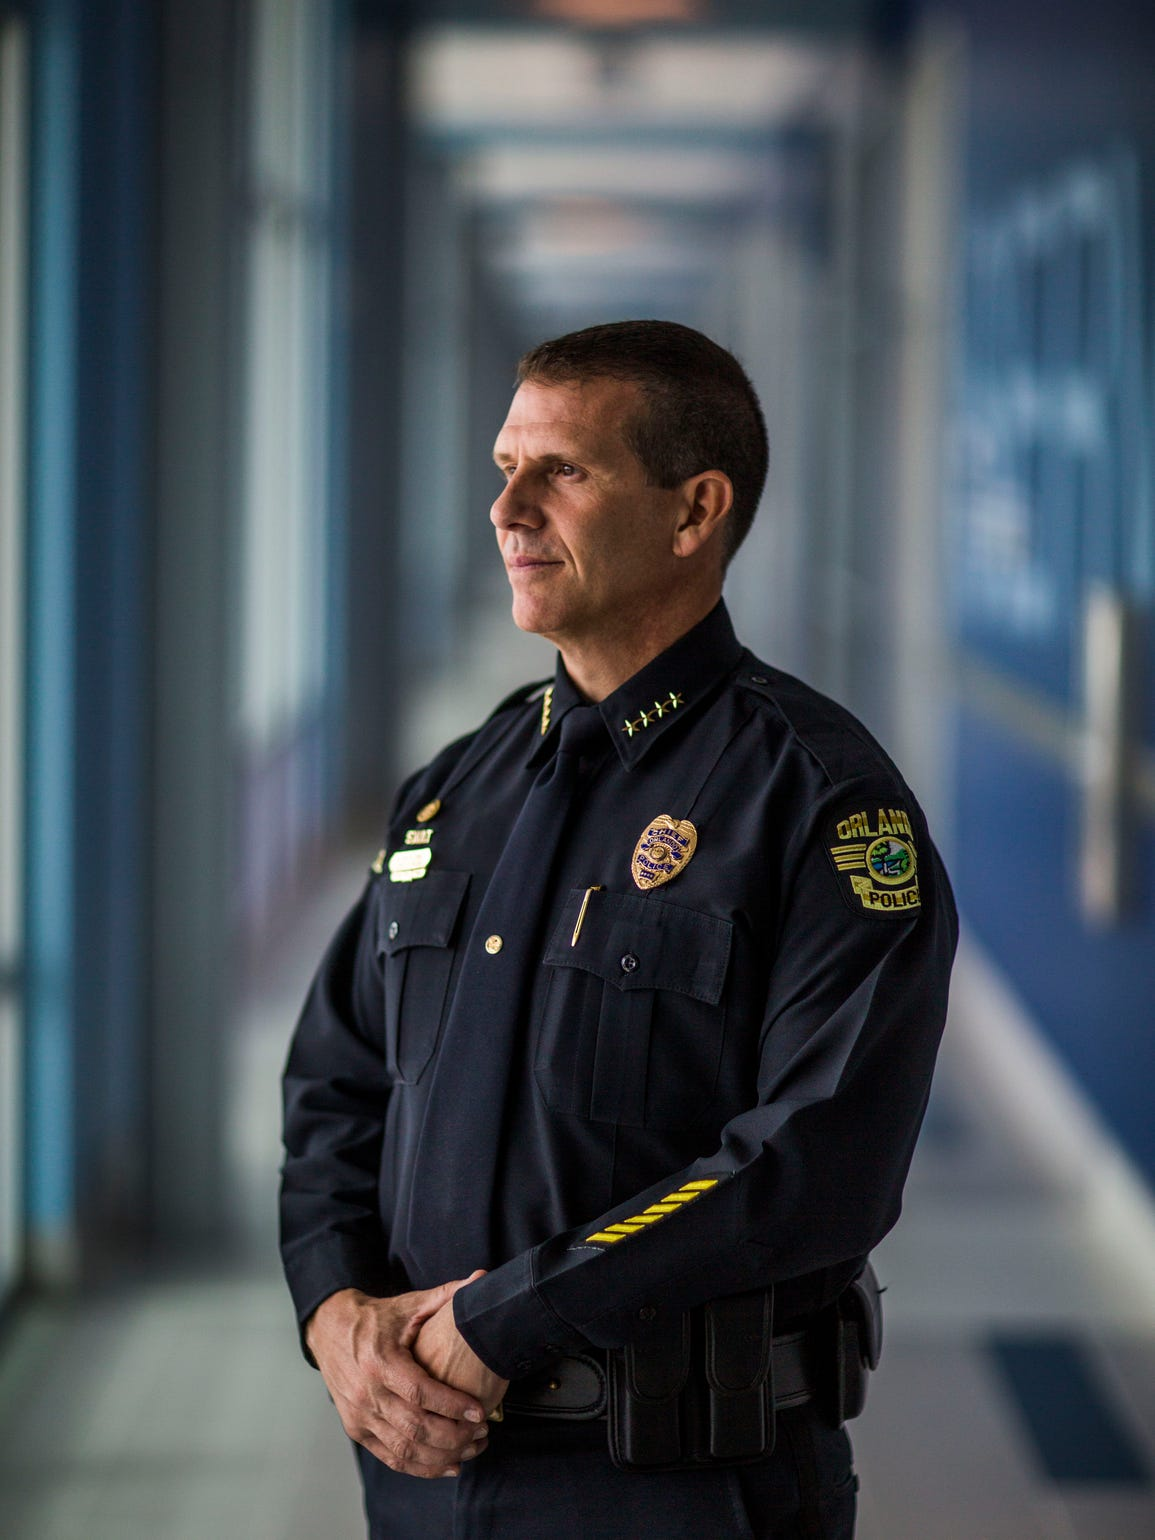 Orlando Chief of Police John Mina is photographed in